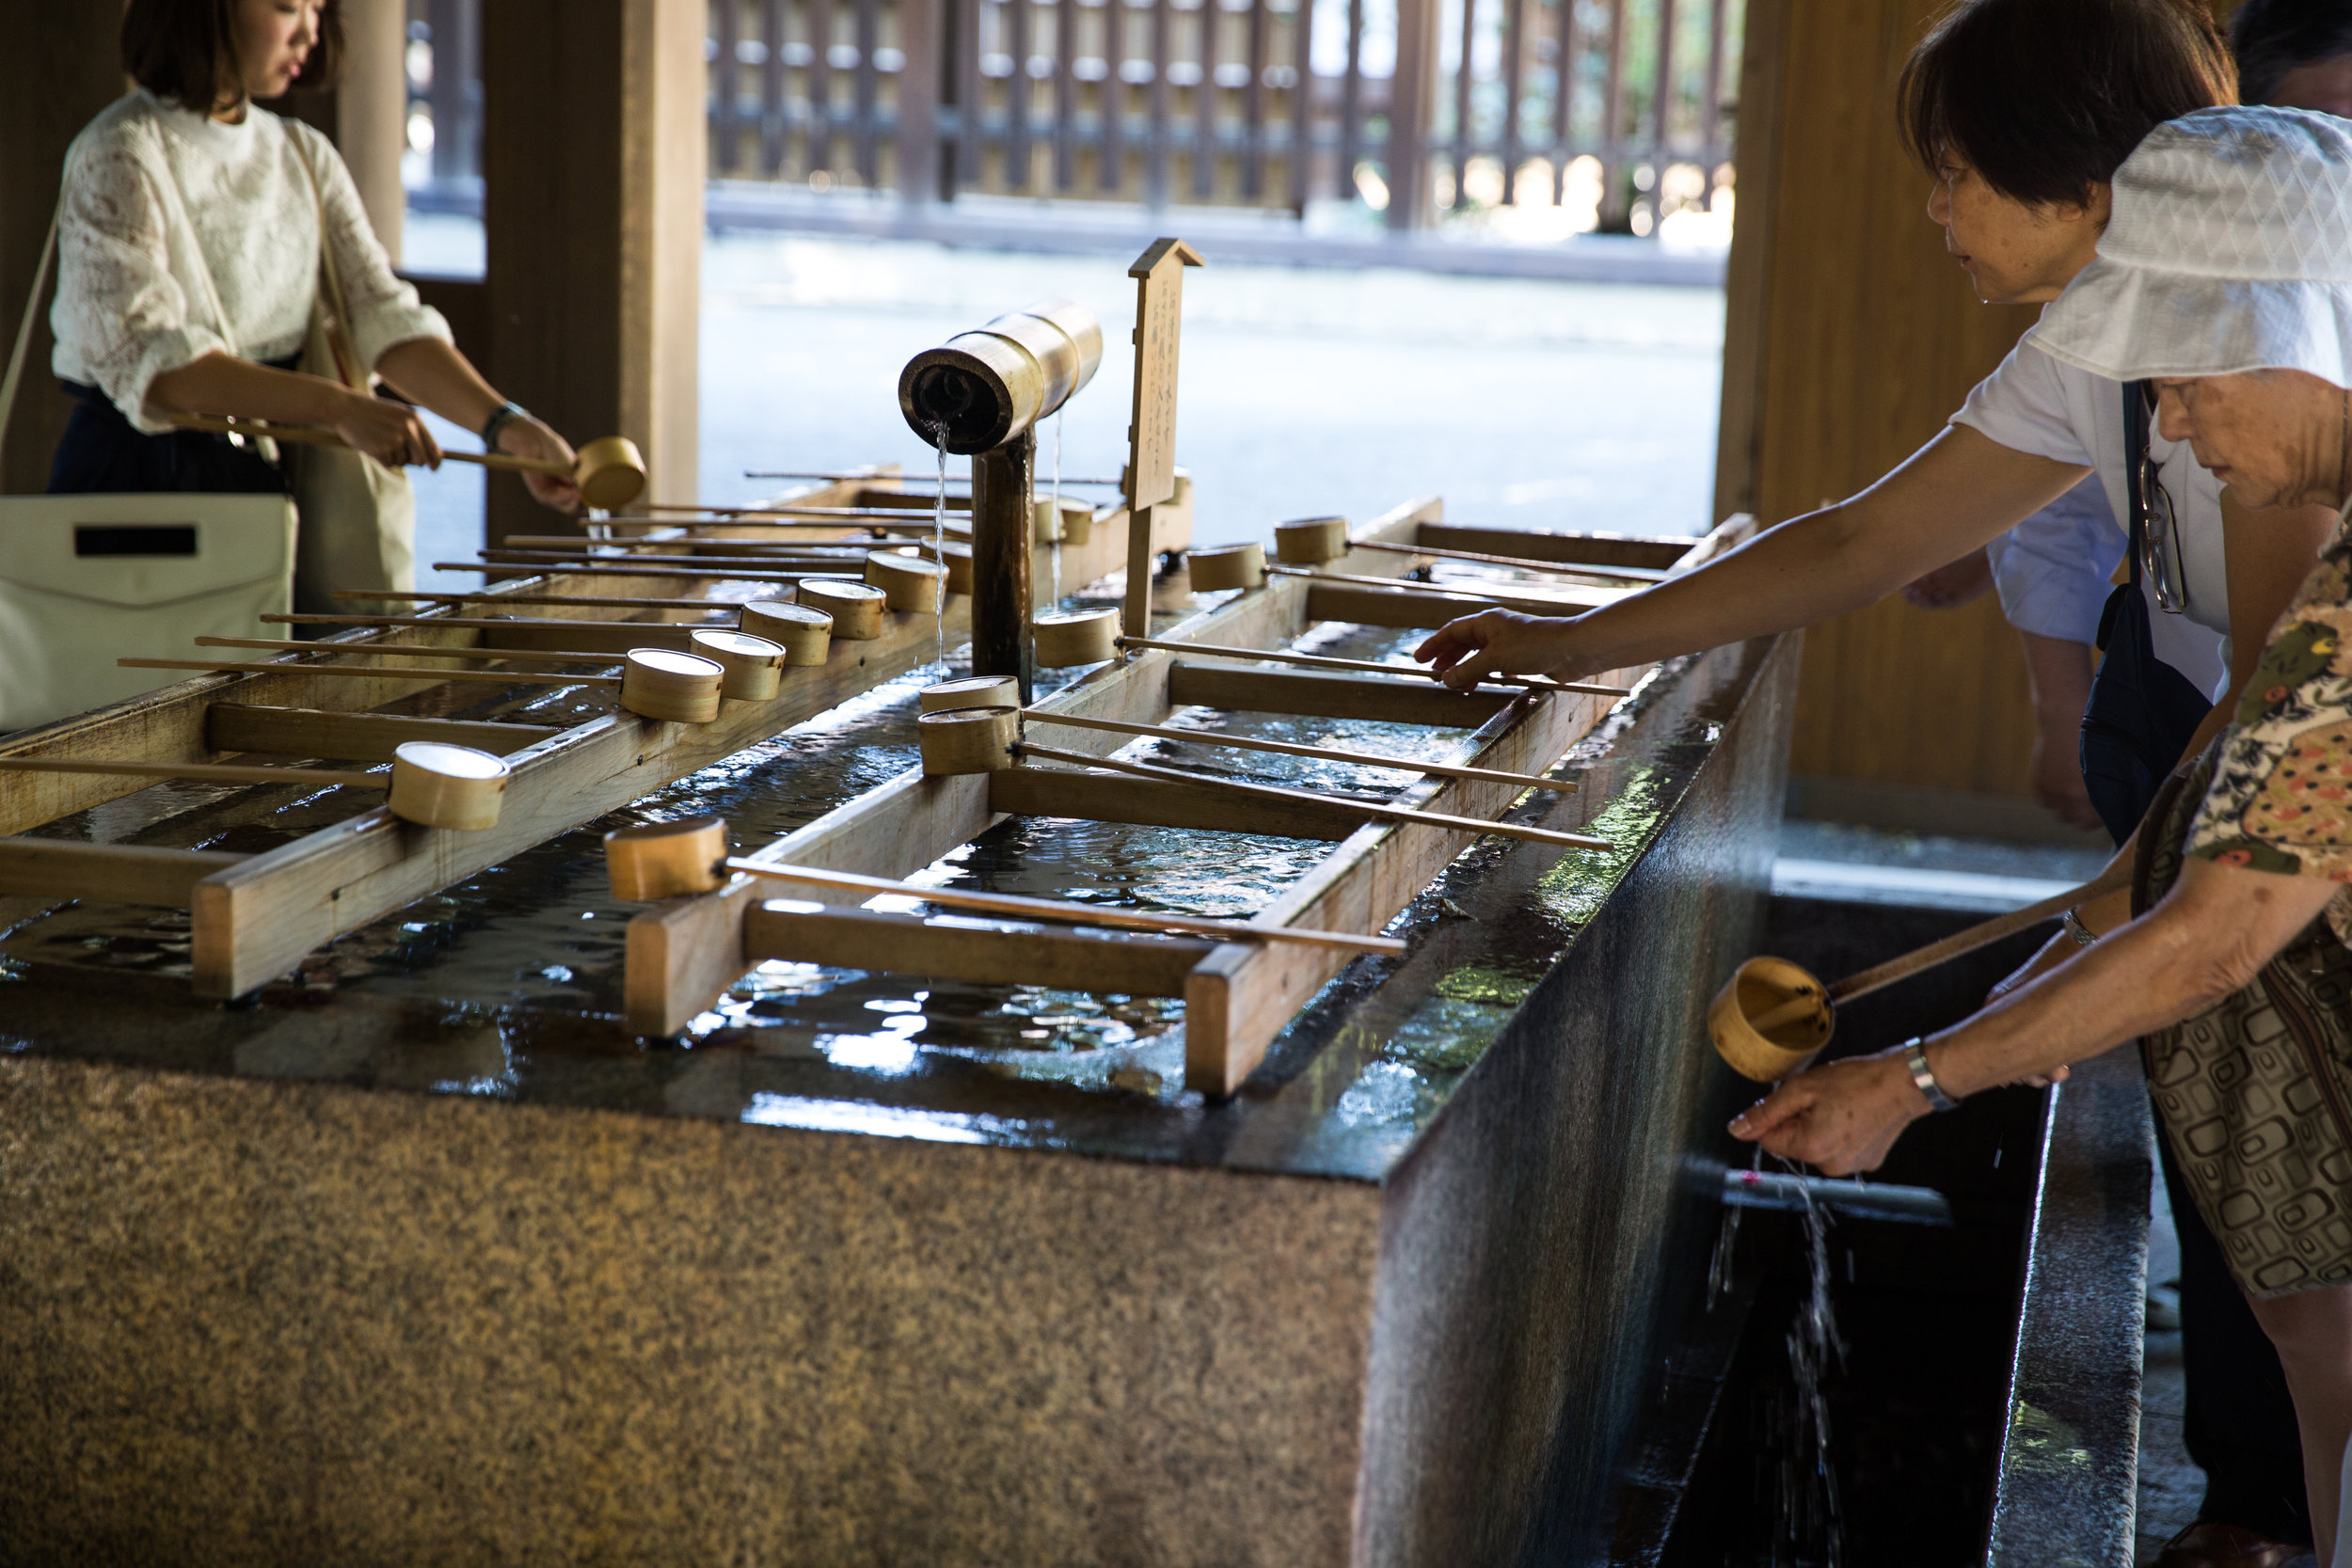 Visitors gather to wash their hands before prayer in the shrine.